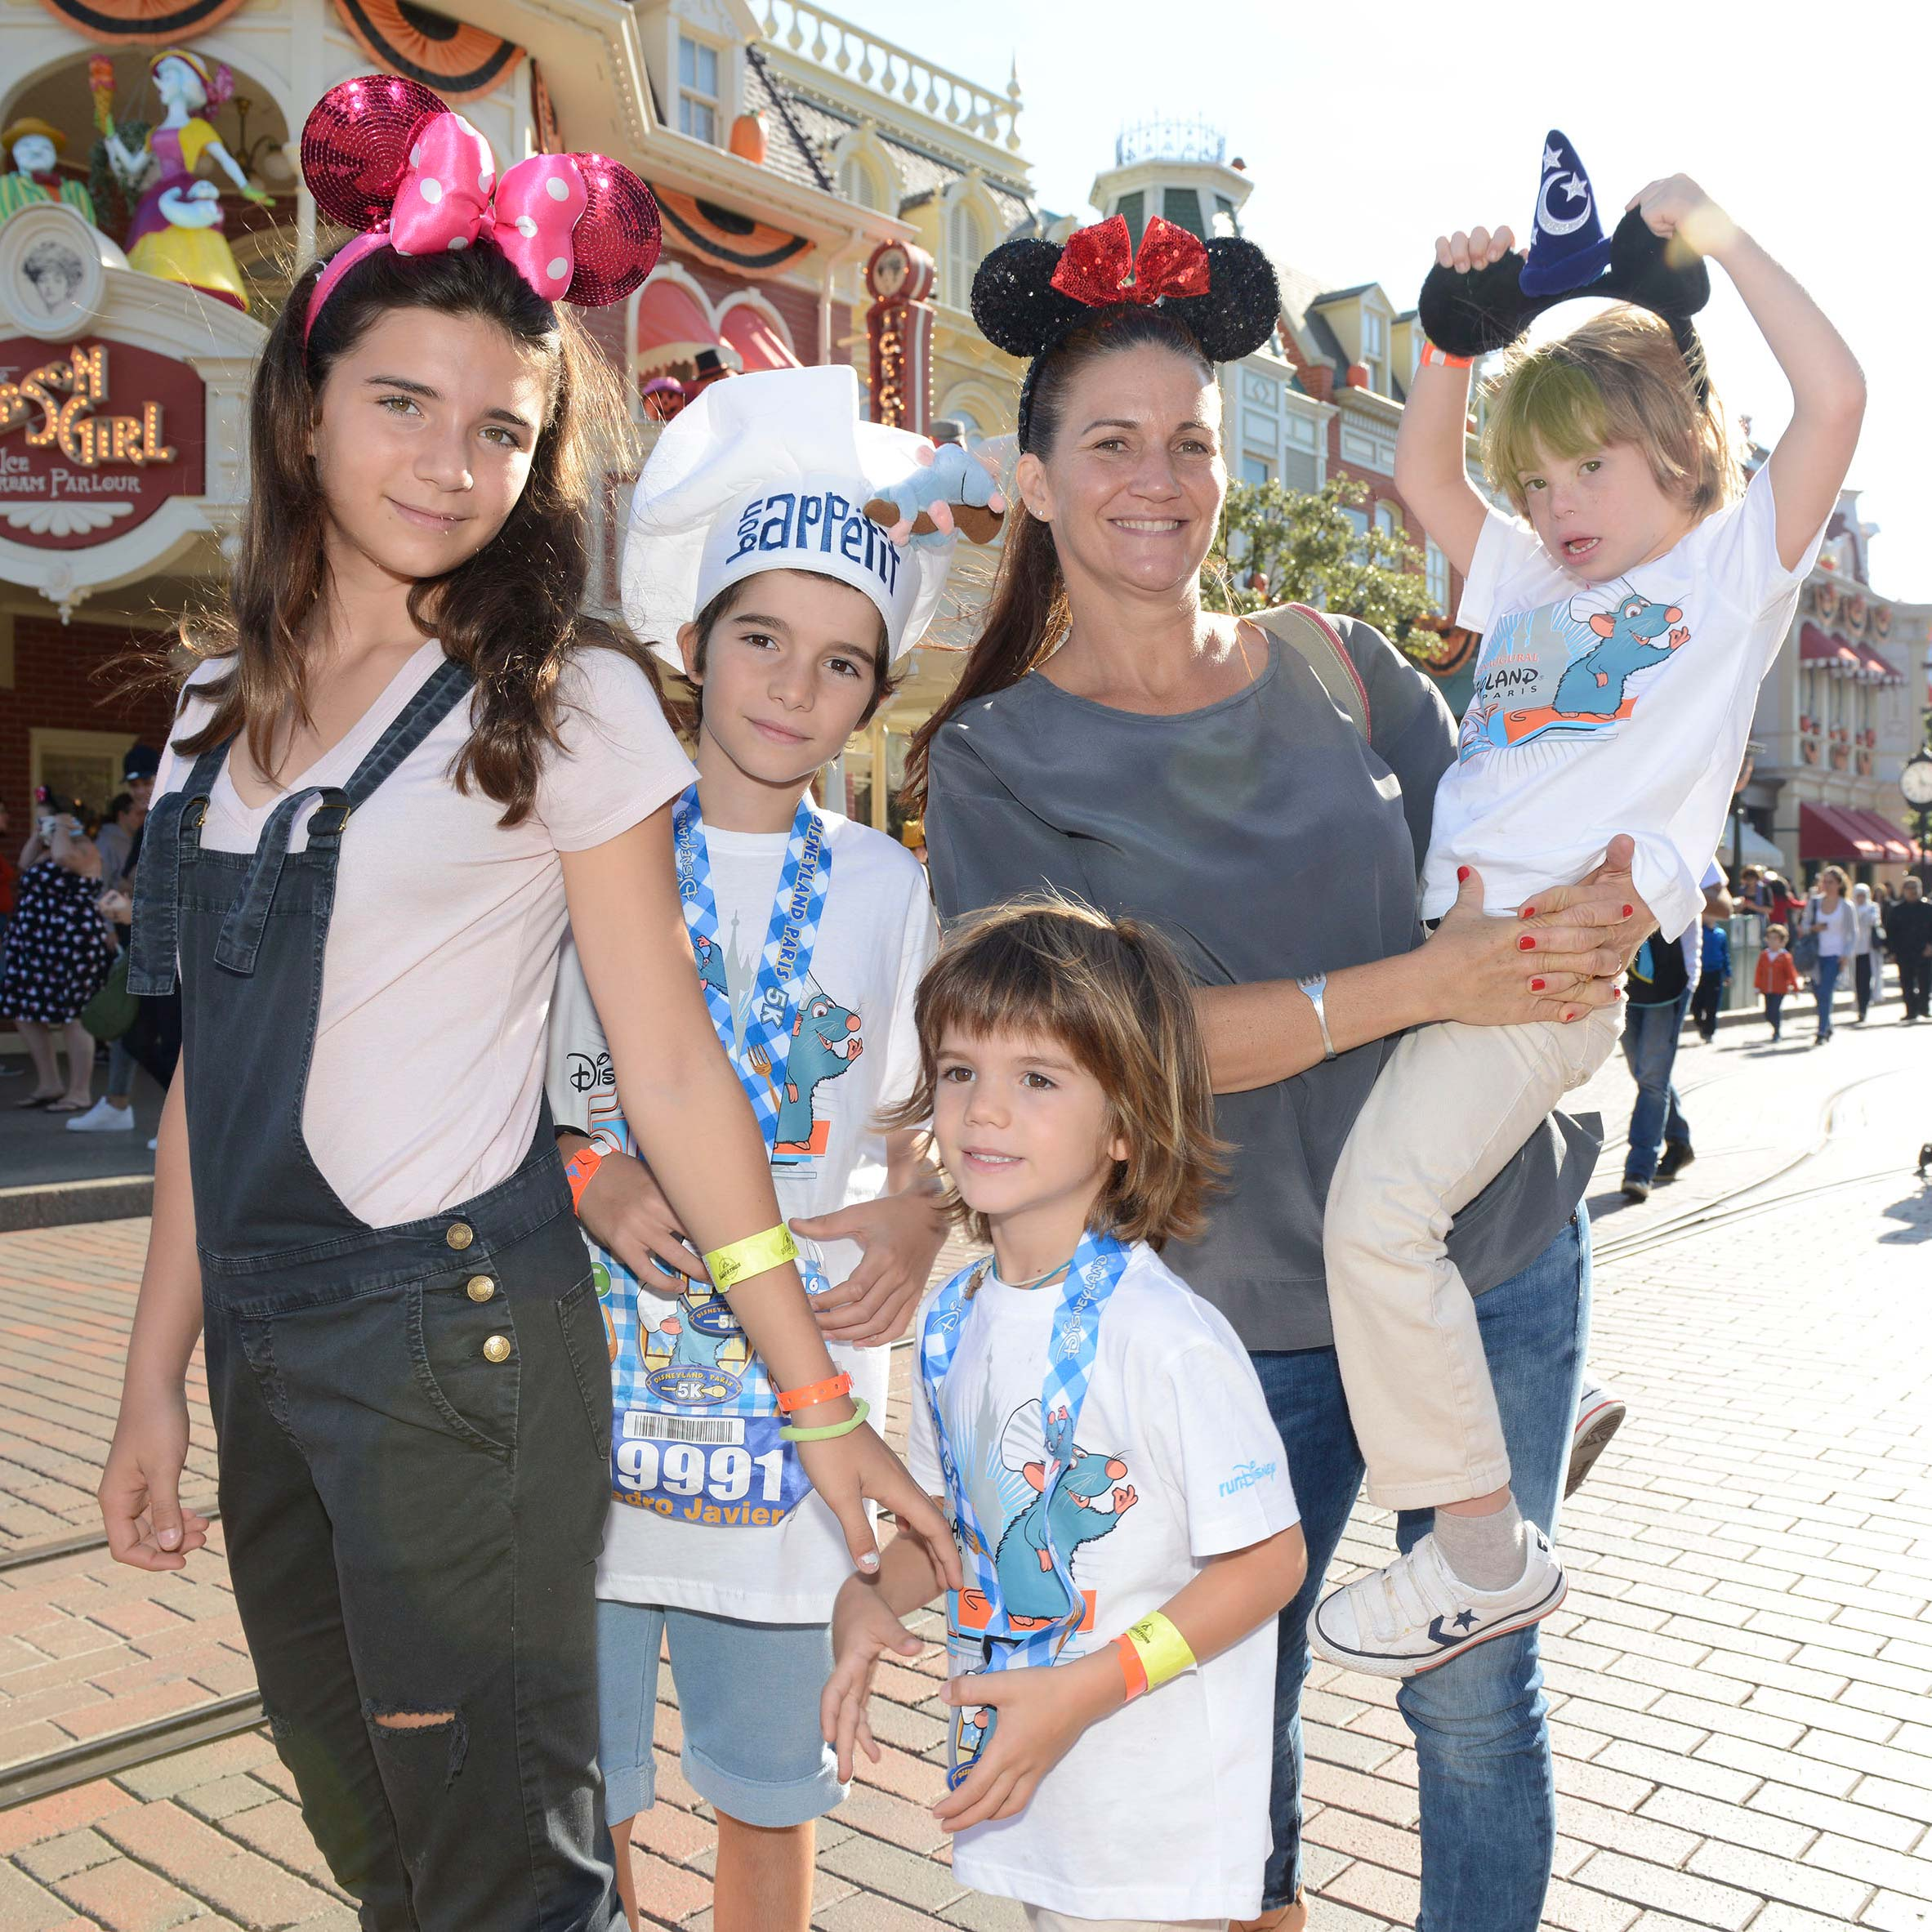 samantha_disneyland_paris_familia